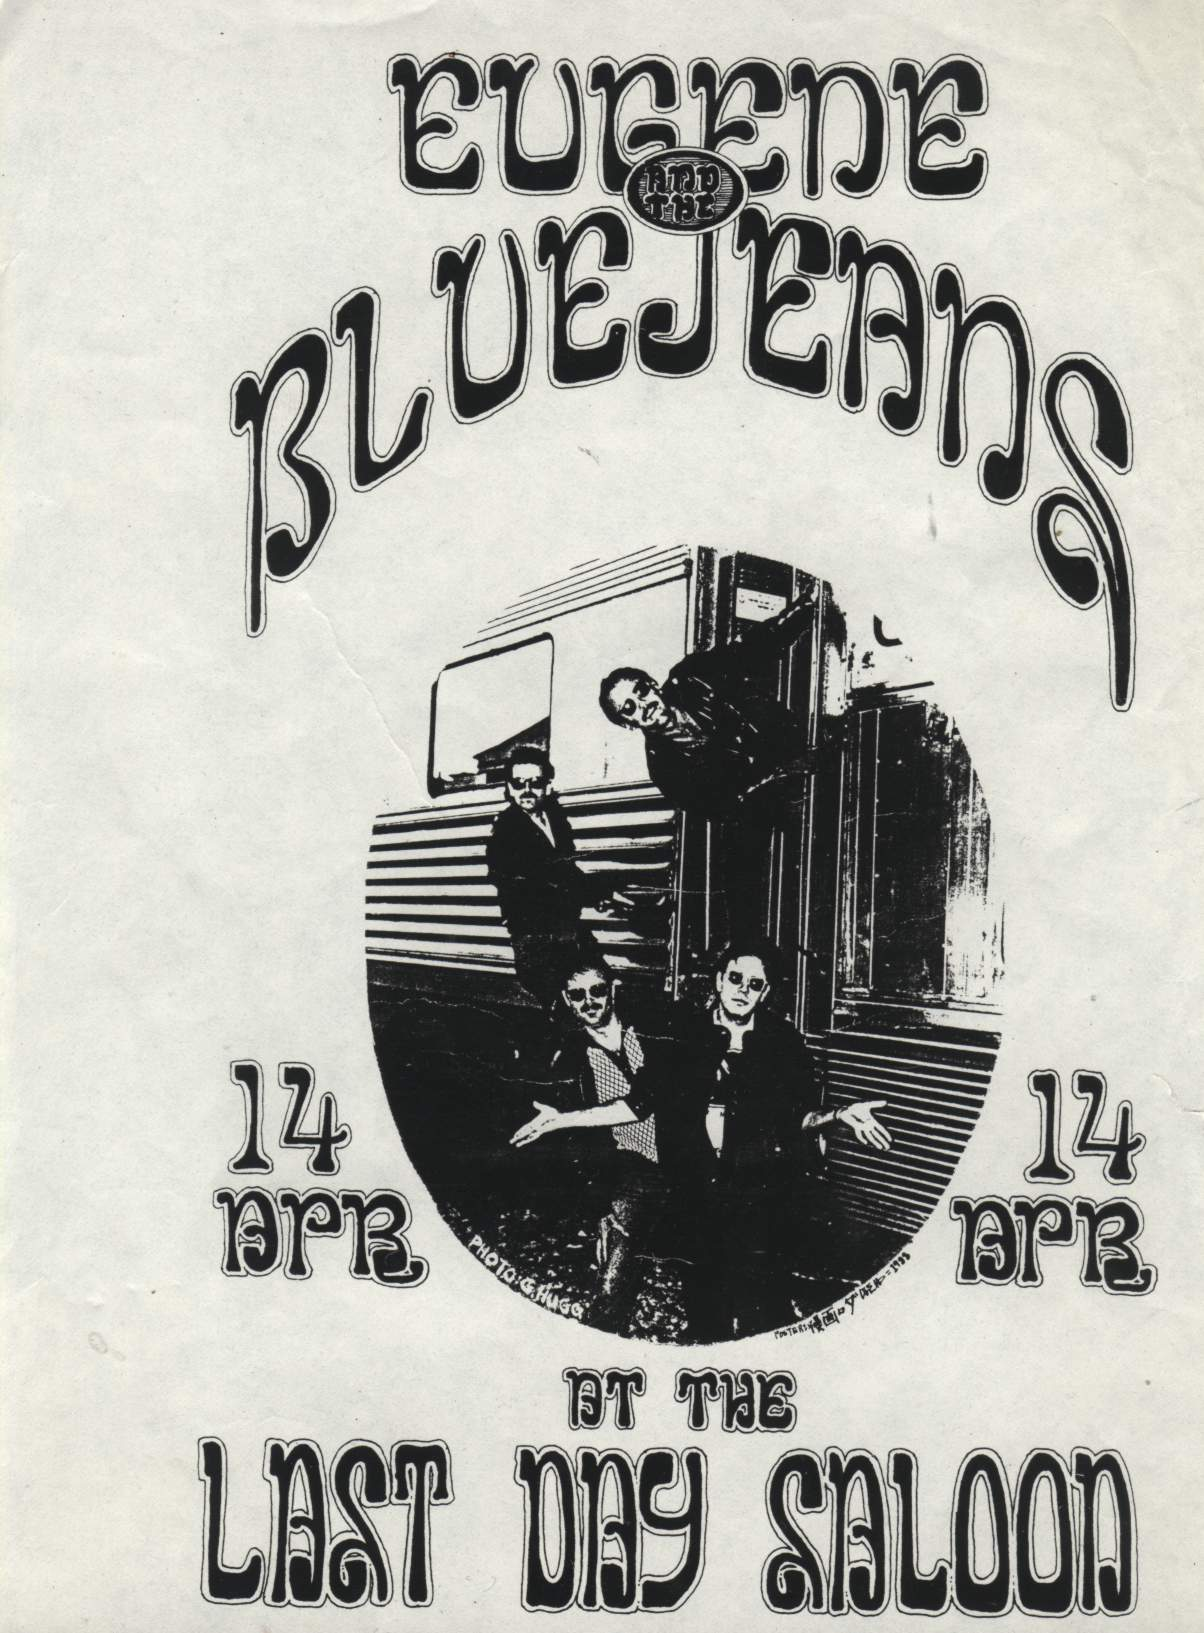 Eugene & The Bluejeans Last Day Saloon Poster